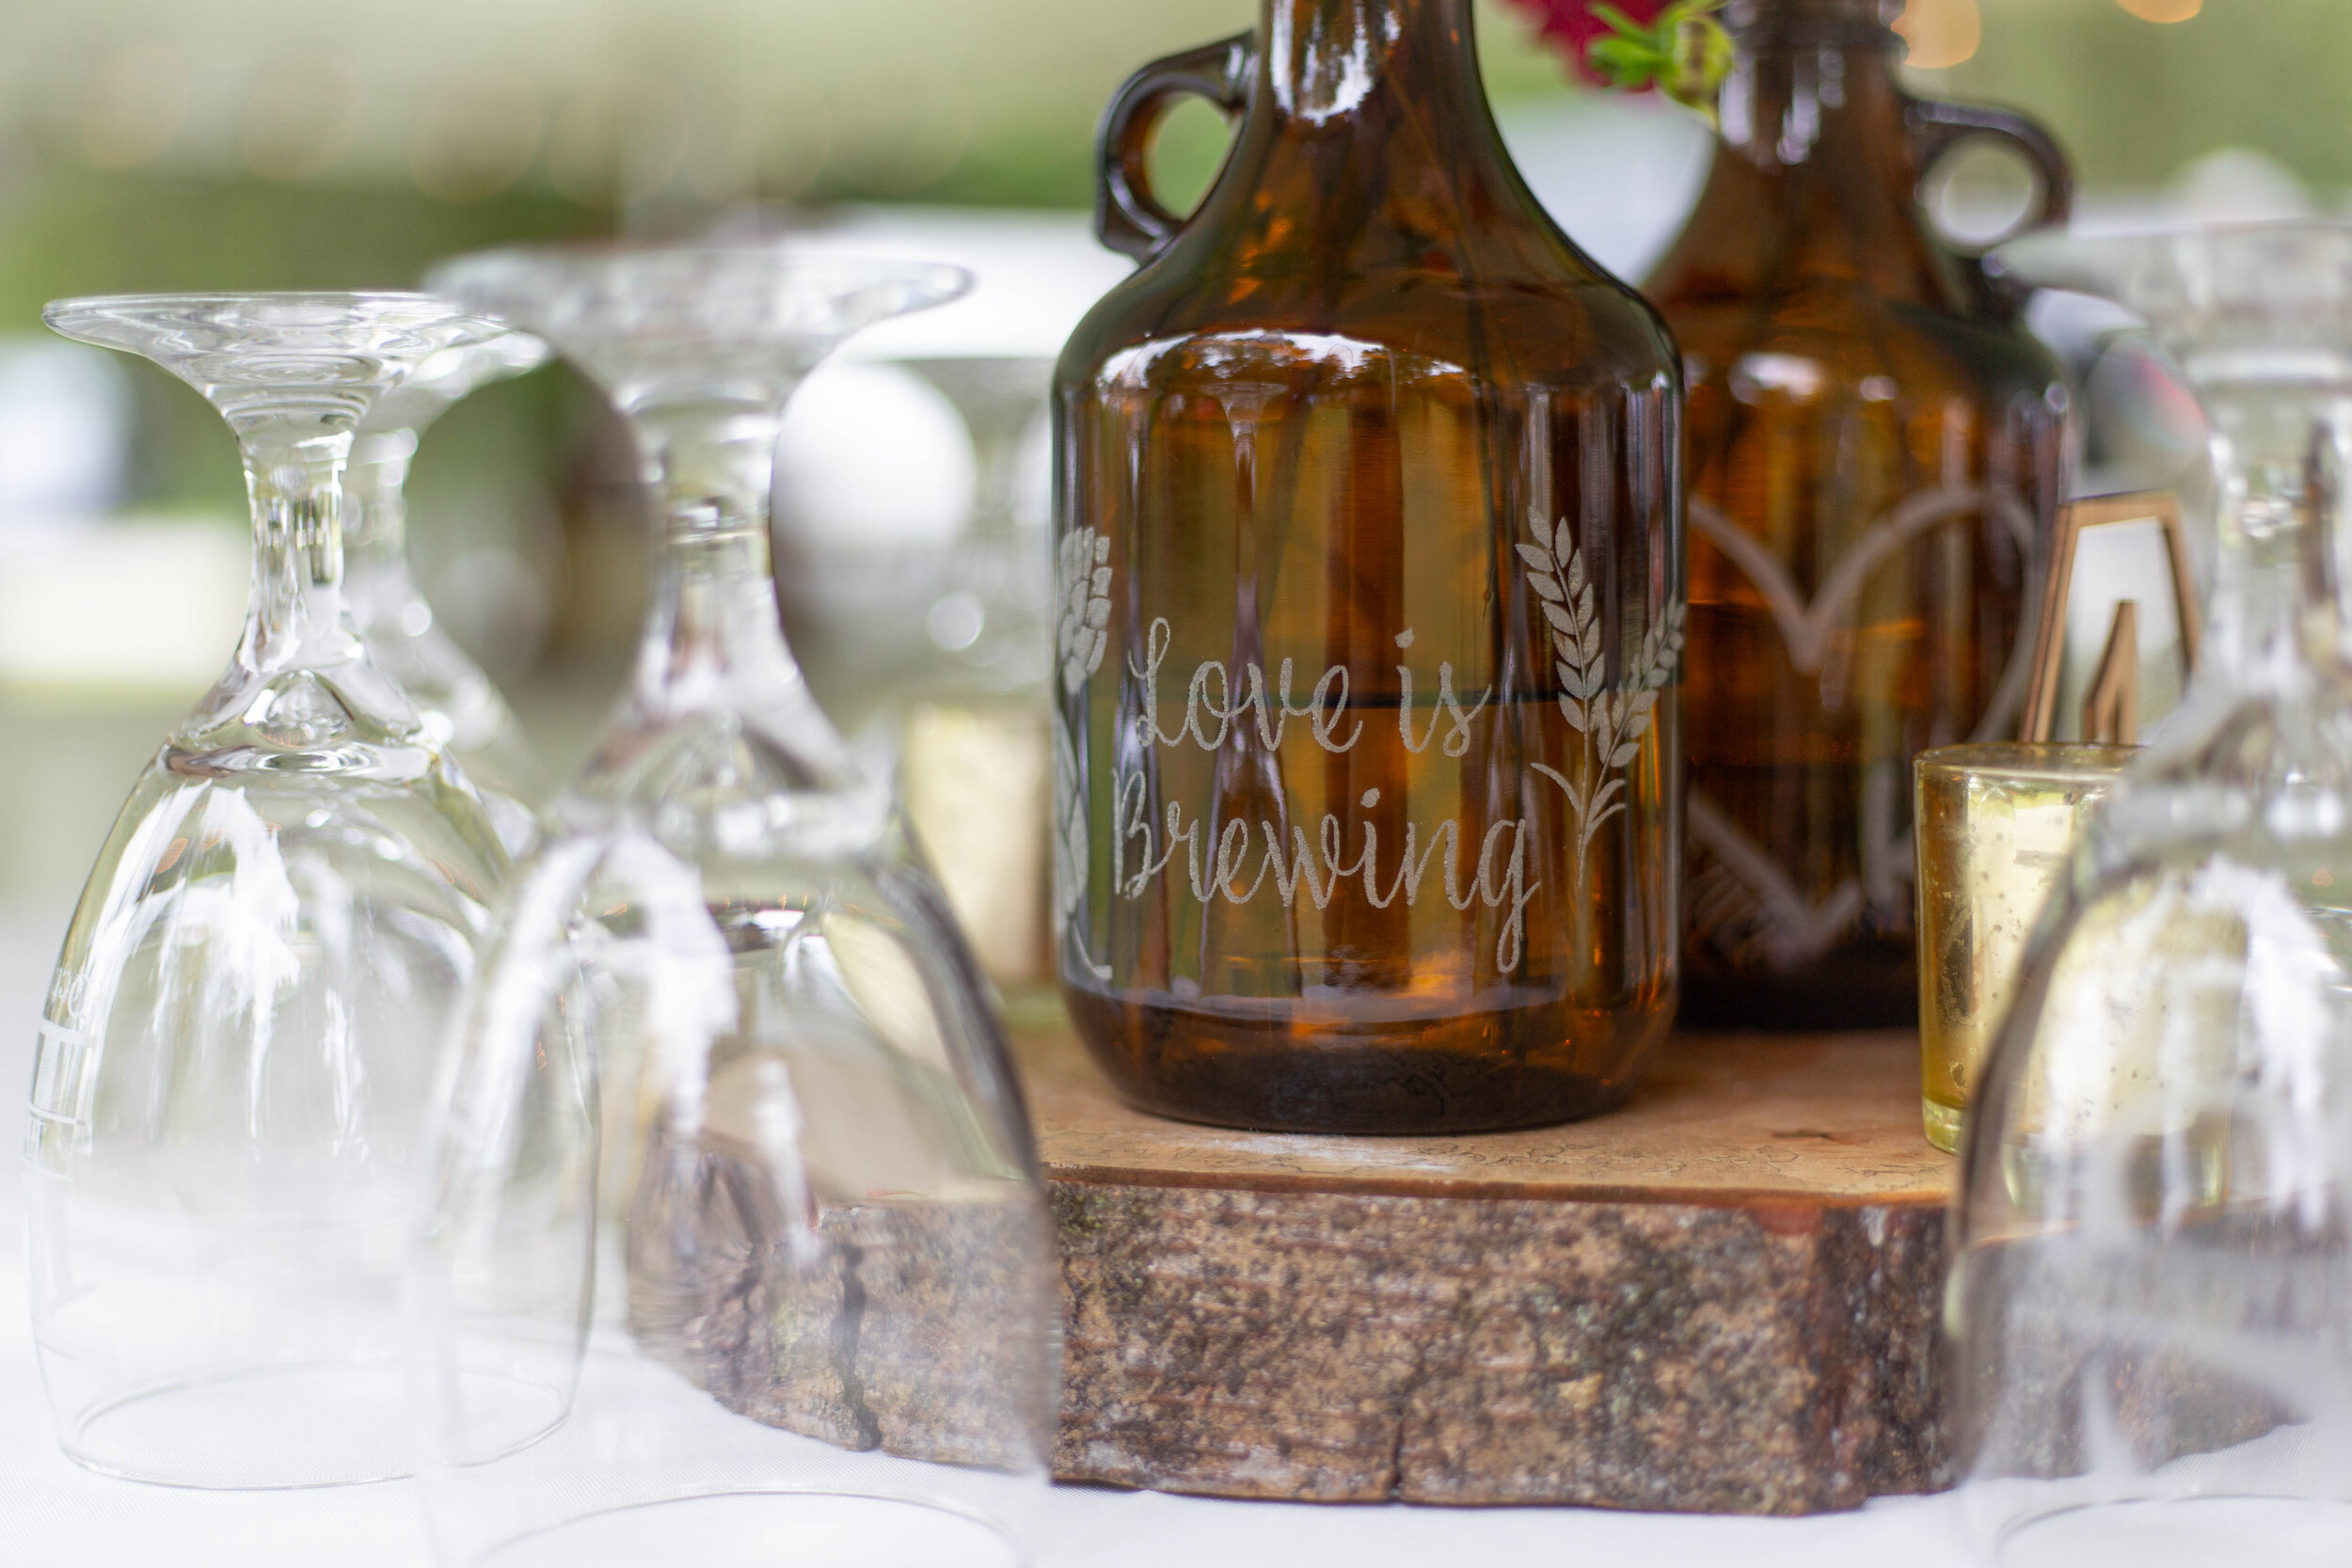 Backyard Homebrew Wedding in Branchville NJ by Dan Schenker Photography-15.jpg